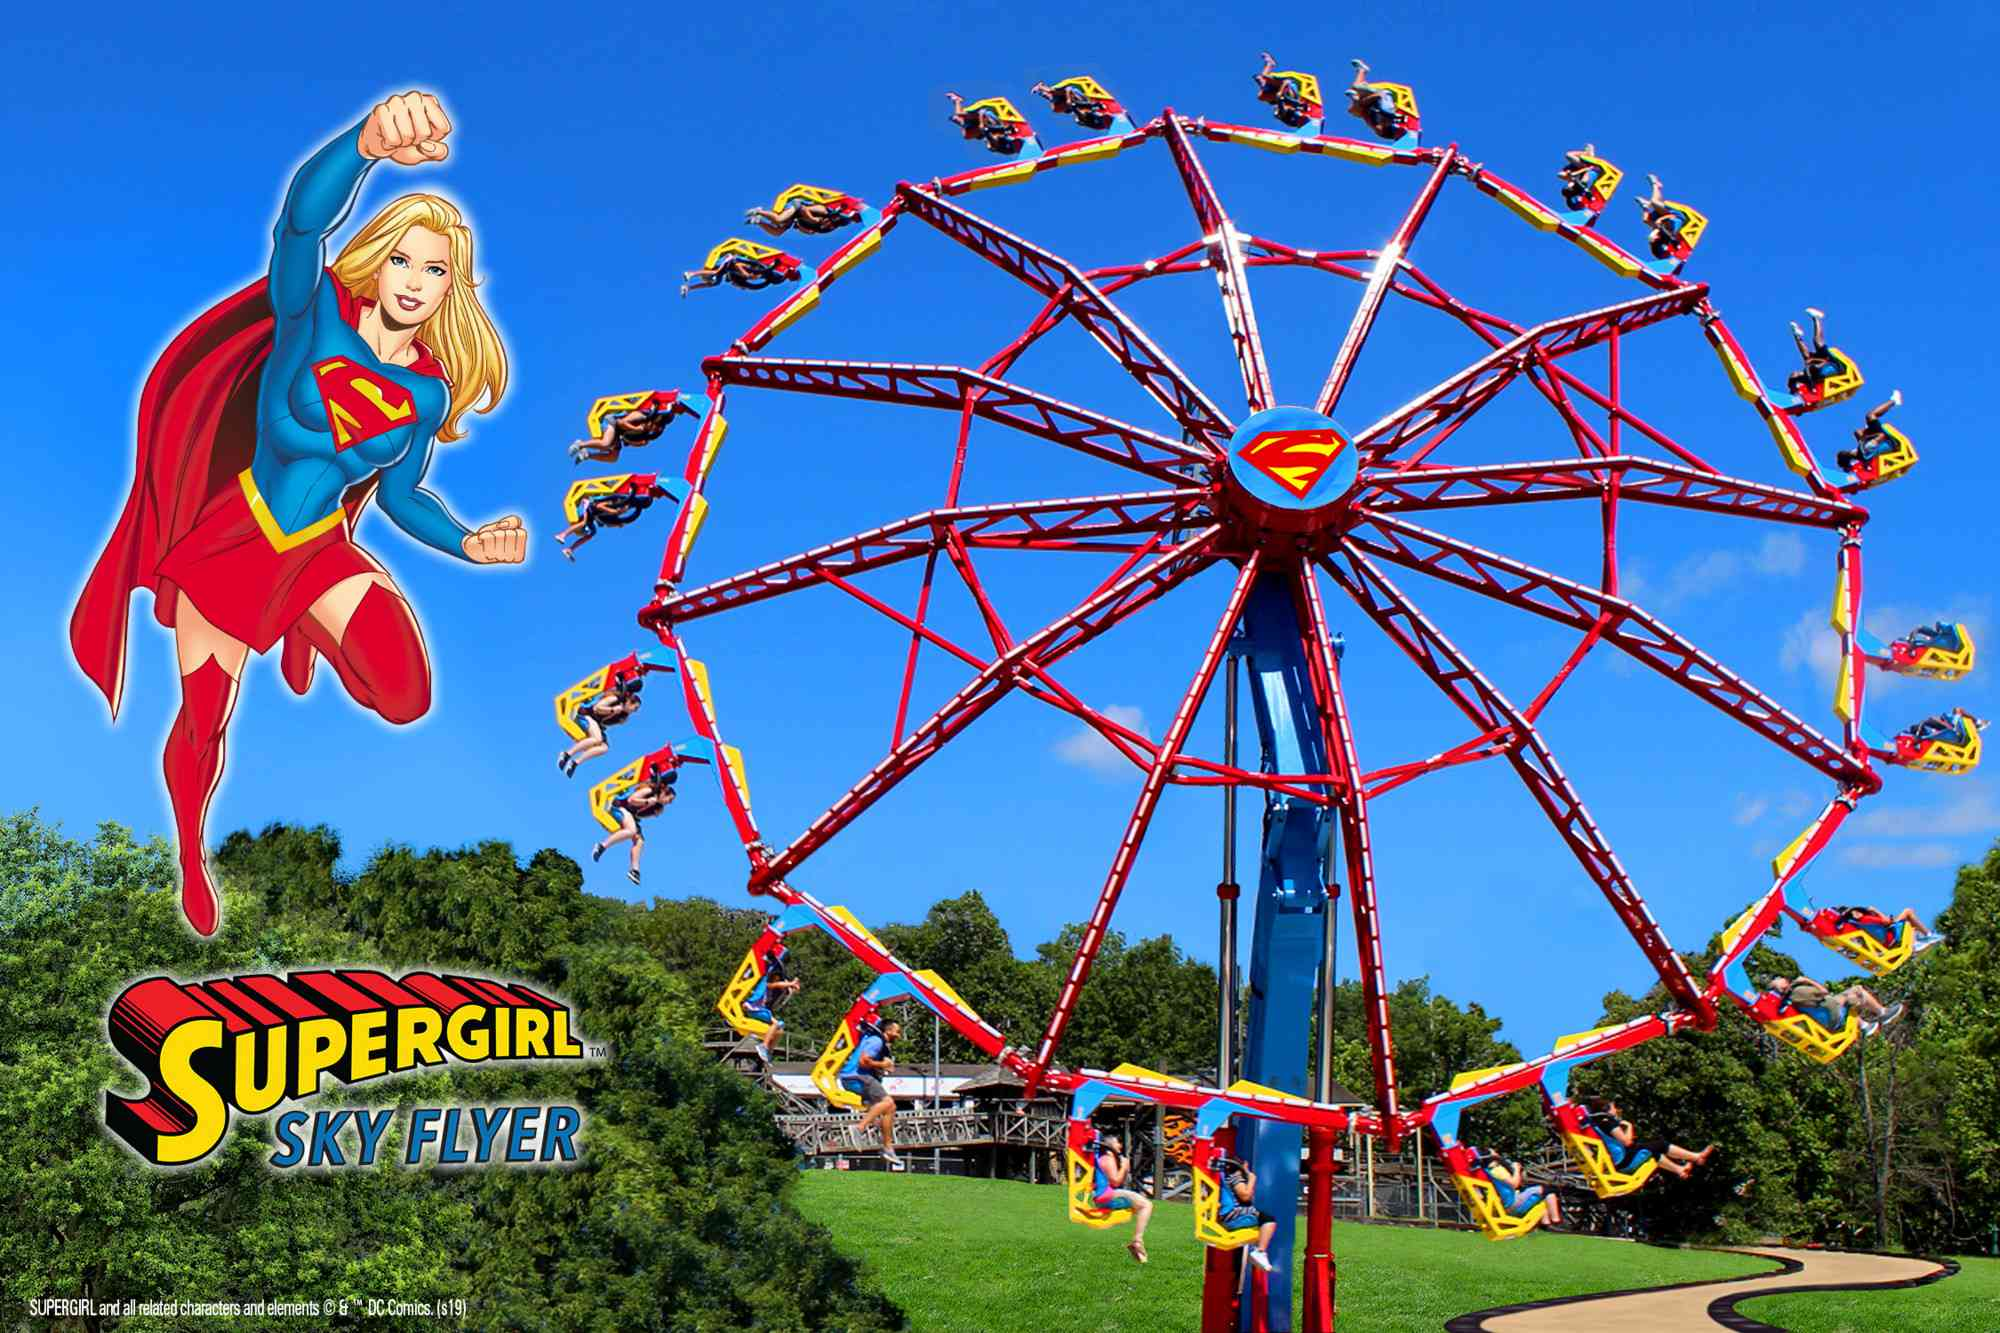 Supergirl Sky Flyer at Six Flags New England